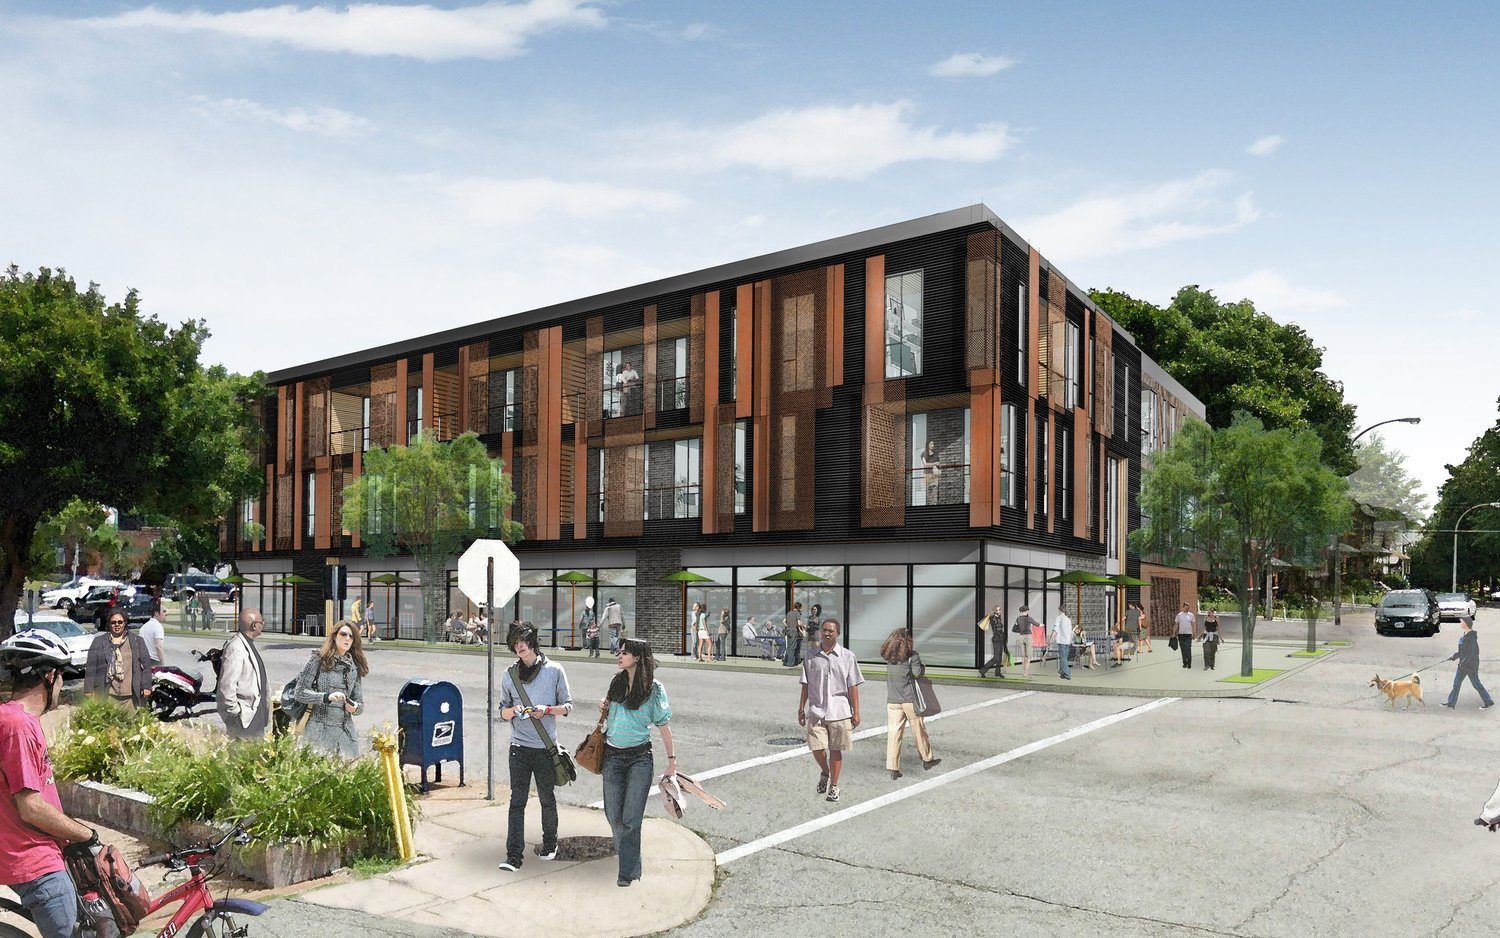 Morgan Ford in TGS May See Three-Story, 26-Unit Mixed-Used Project